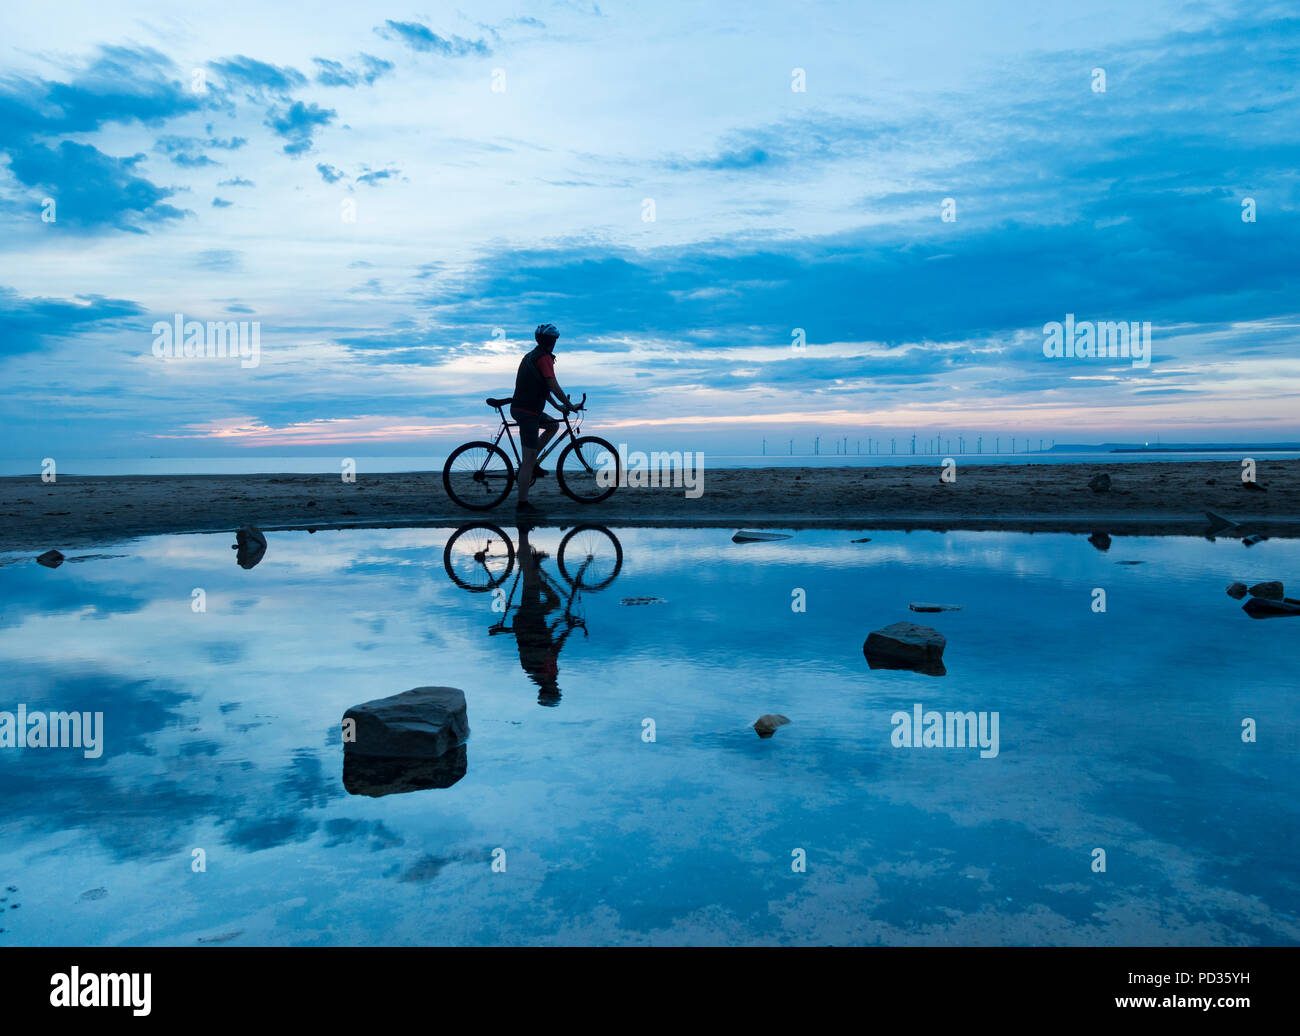 Seaton Carew, County Durham, England. United Kingdom. 6th August, 2018. UK weather: Hazy sunshine at sunrise at Seaton Carew on the north east coast on Monday morning. Cooler weather from midweek is forecast, with the possibility of rain. Credit: ALAN DAWSON/Alamy Live News - Stock Image